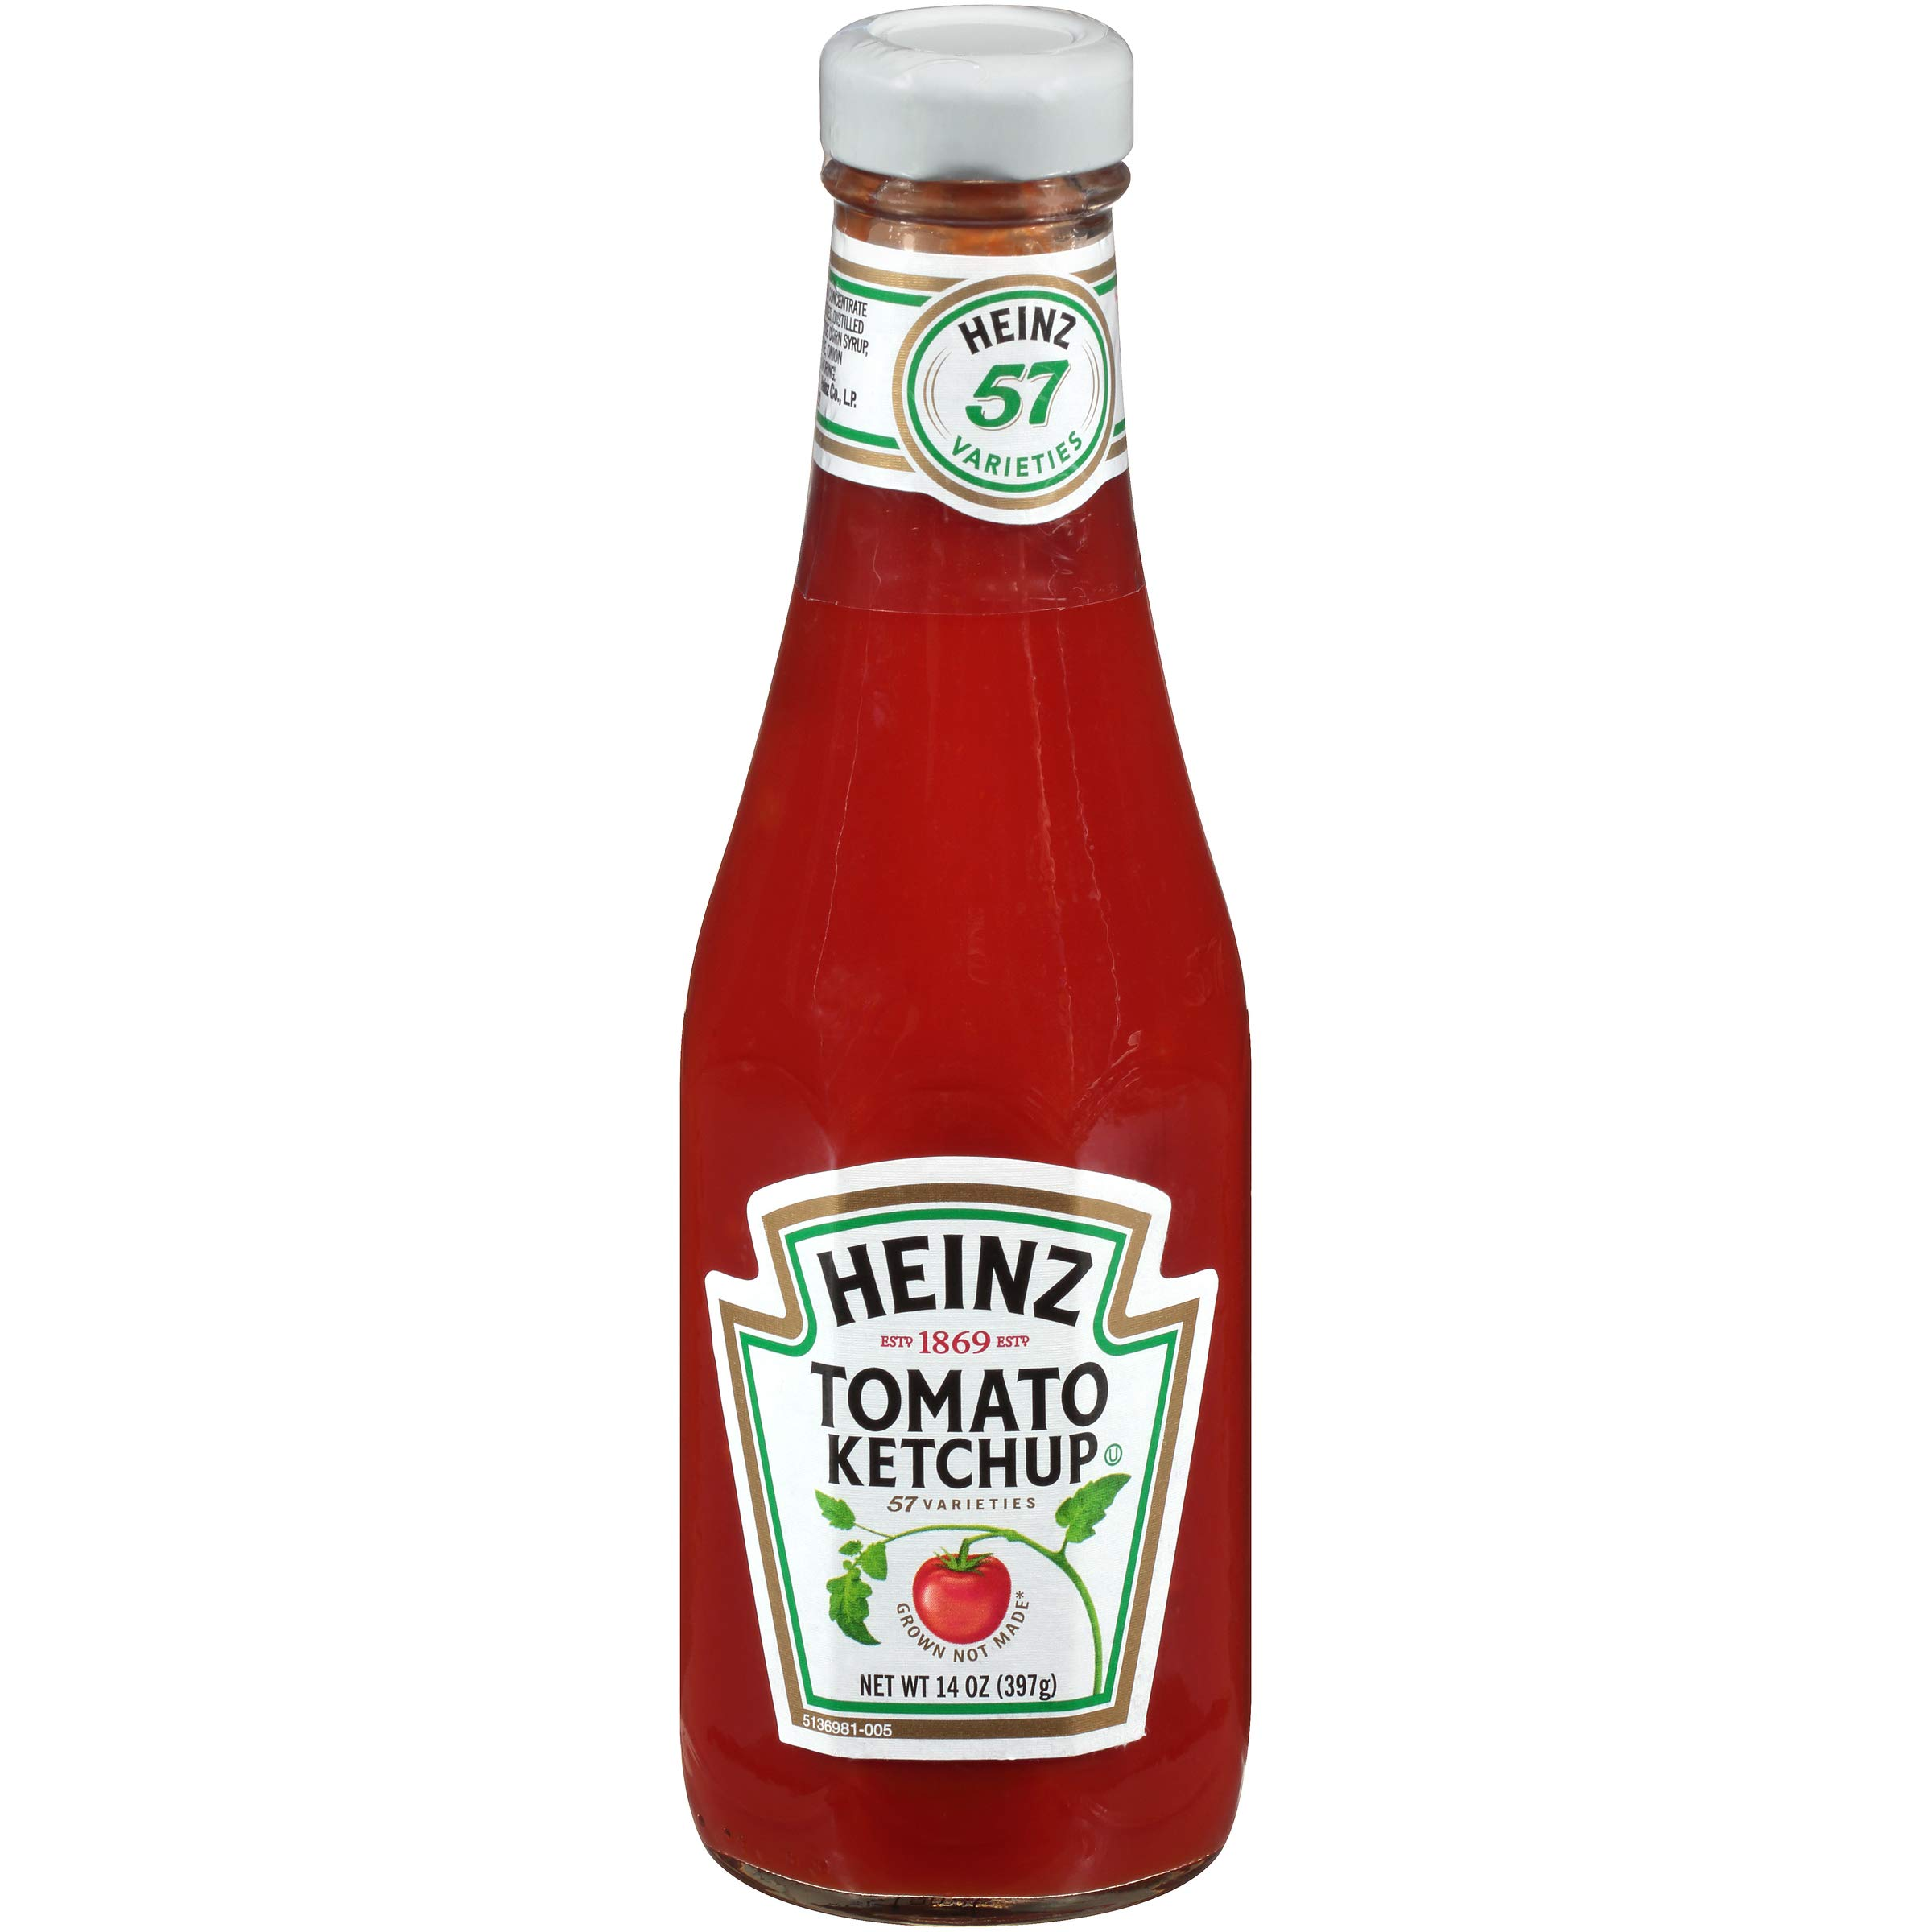 HEINZ Ketchup, 14 oz. Glass Bottles (Pack of 24) by Heinz